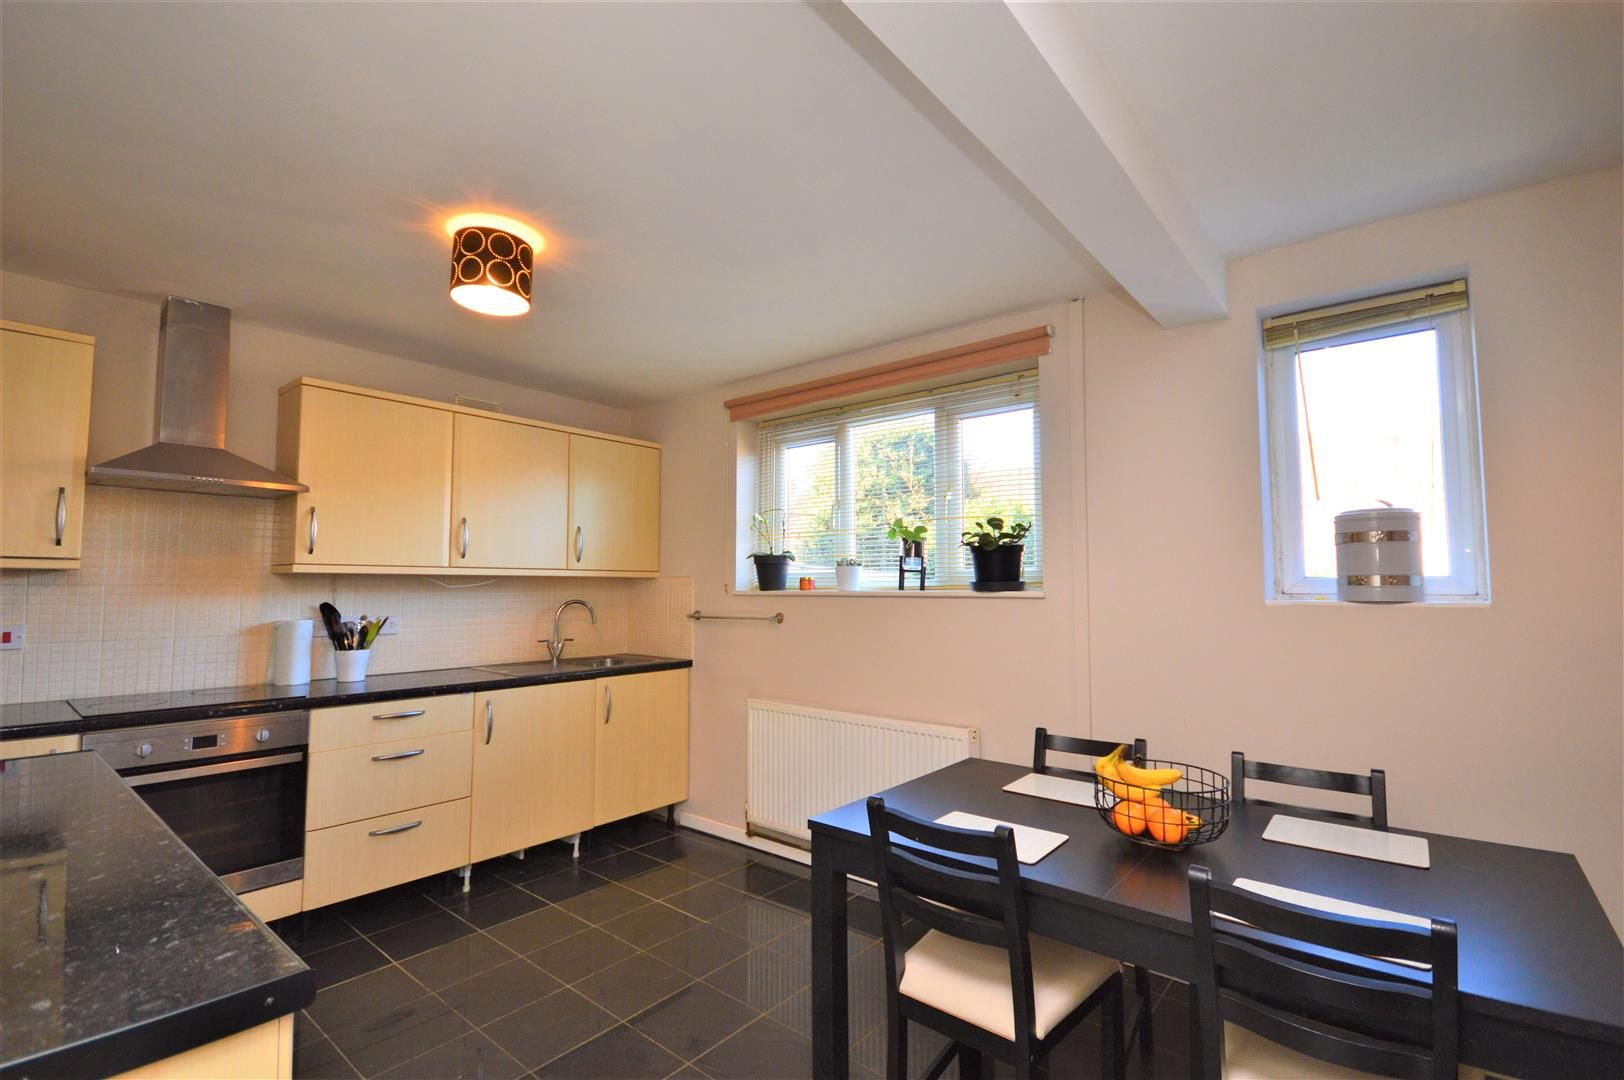 3 bed end-of-terrace for sale in Hereford  - Property Image 7